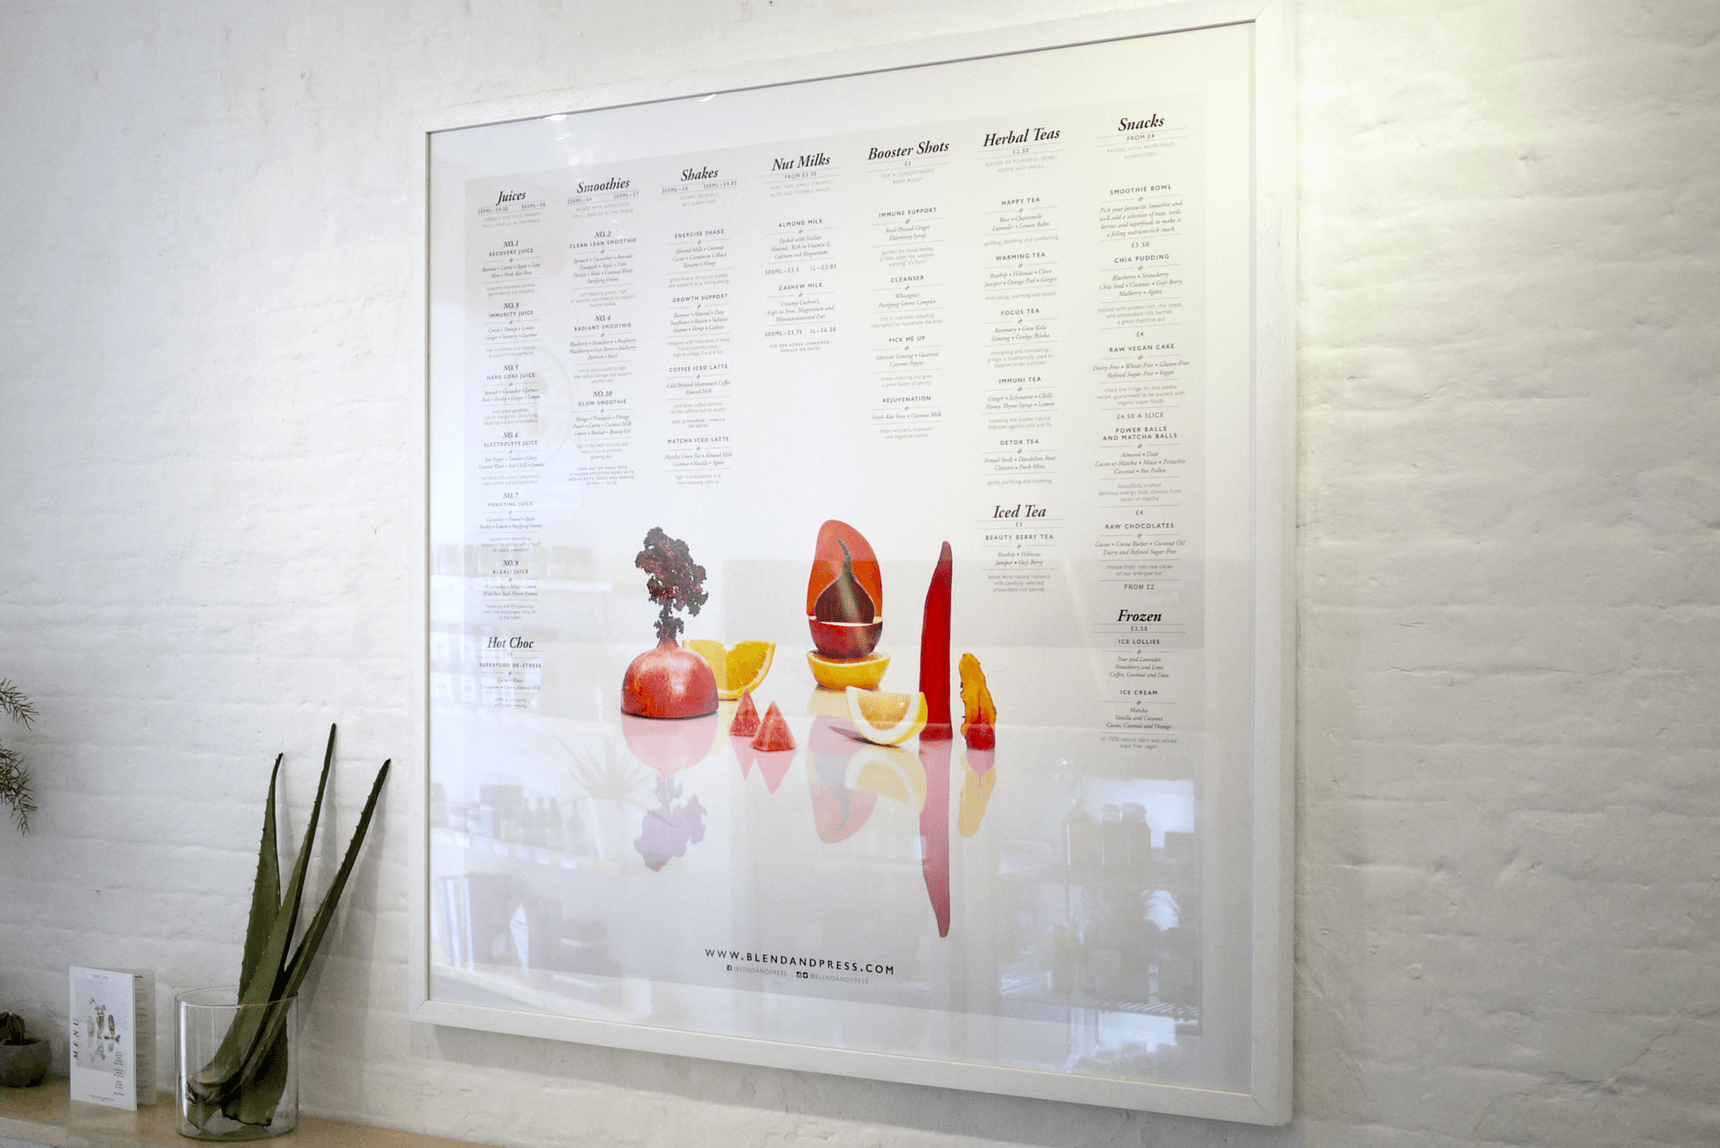 Framed menu board on wall in store for blend and press